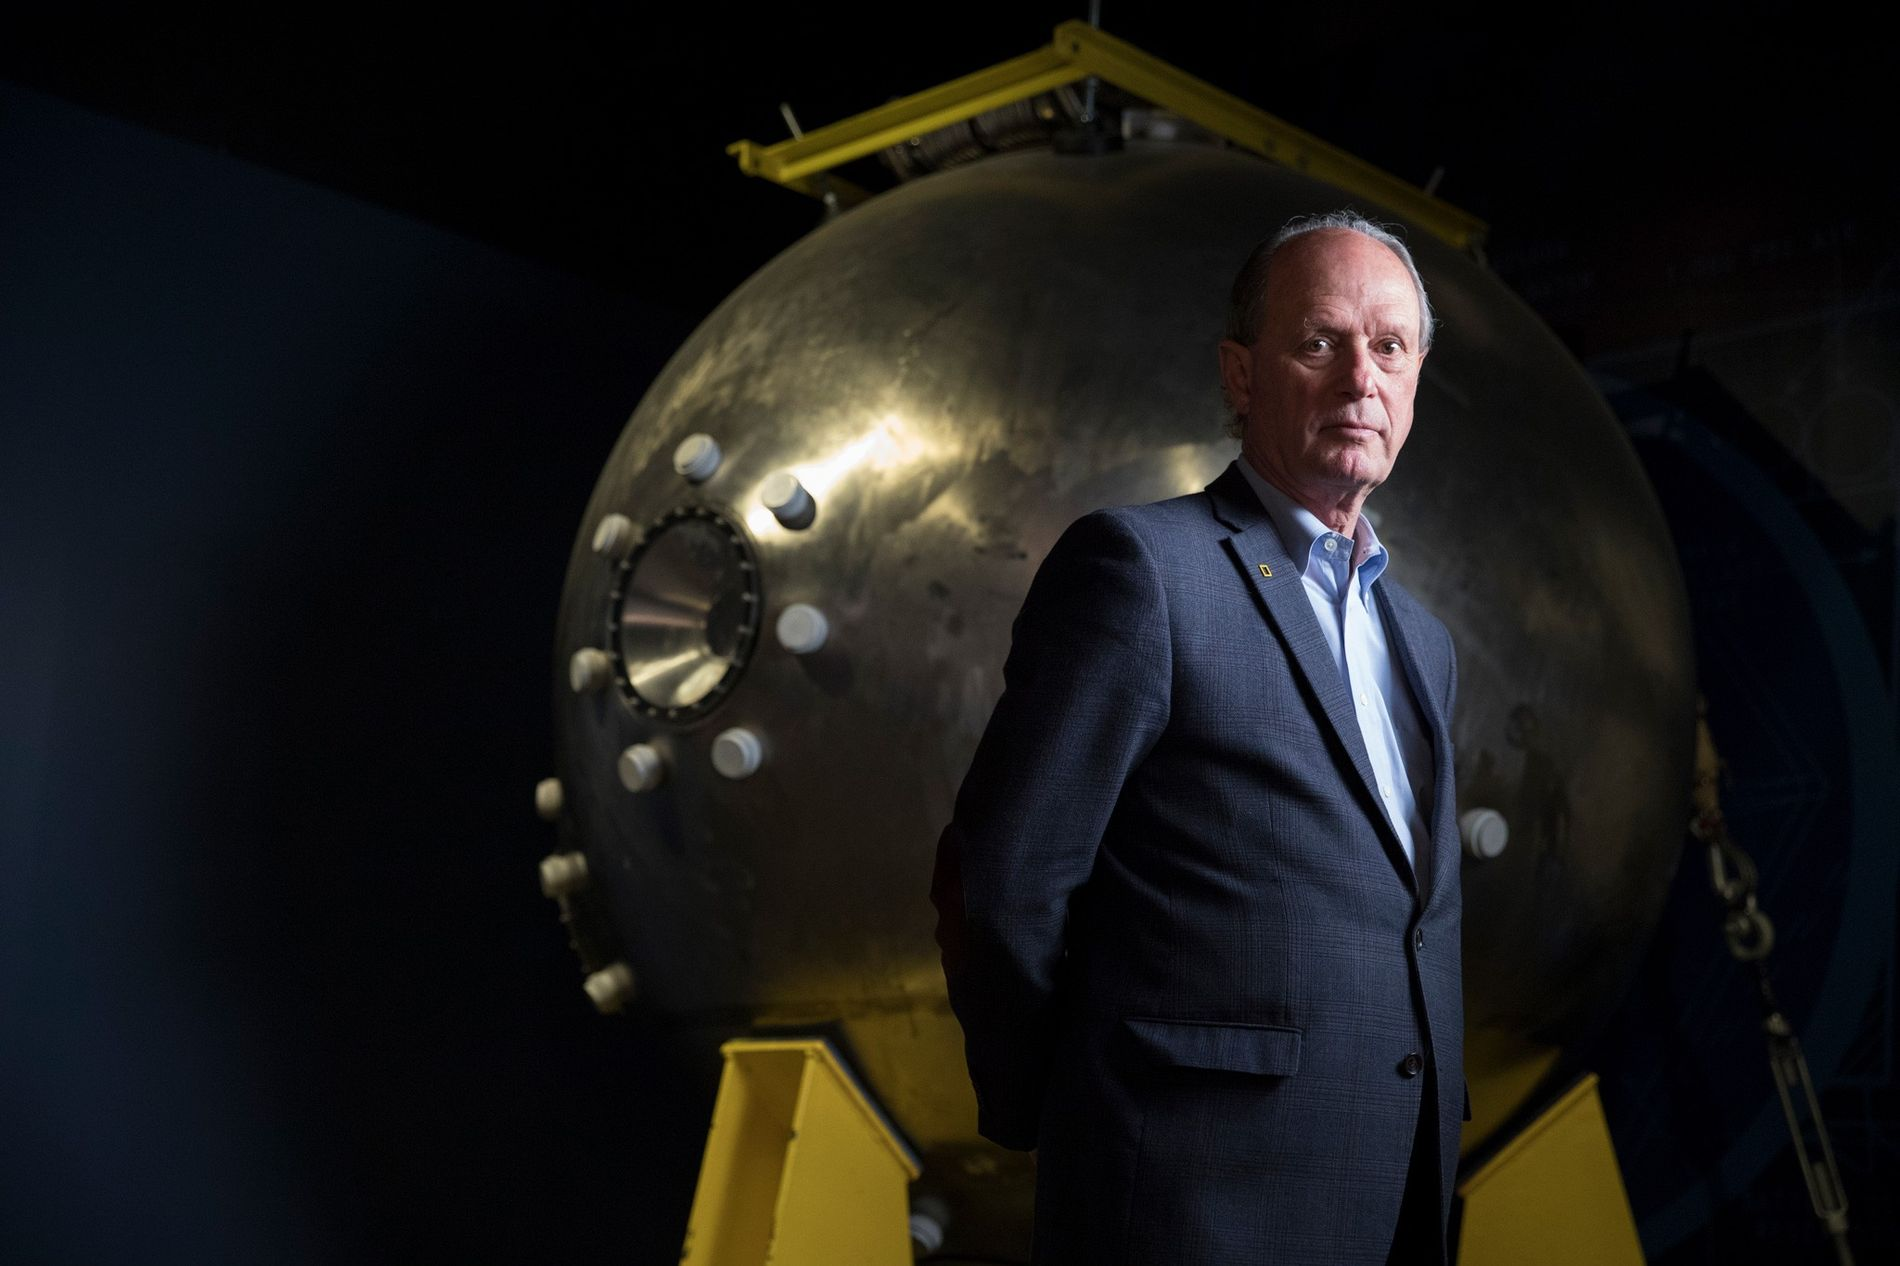 Robert Ballard, discoverer of the Titanic, stands in front of the crew module from Alvin, the ...